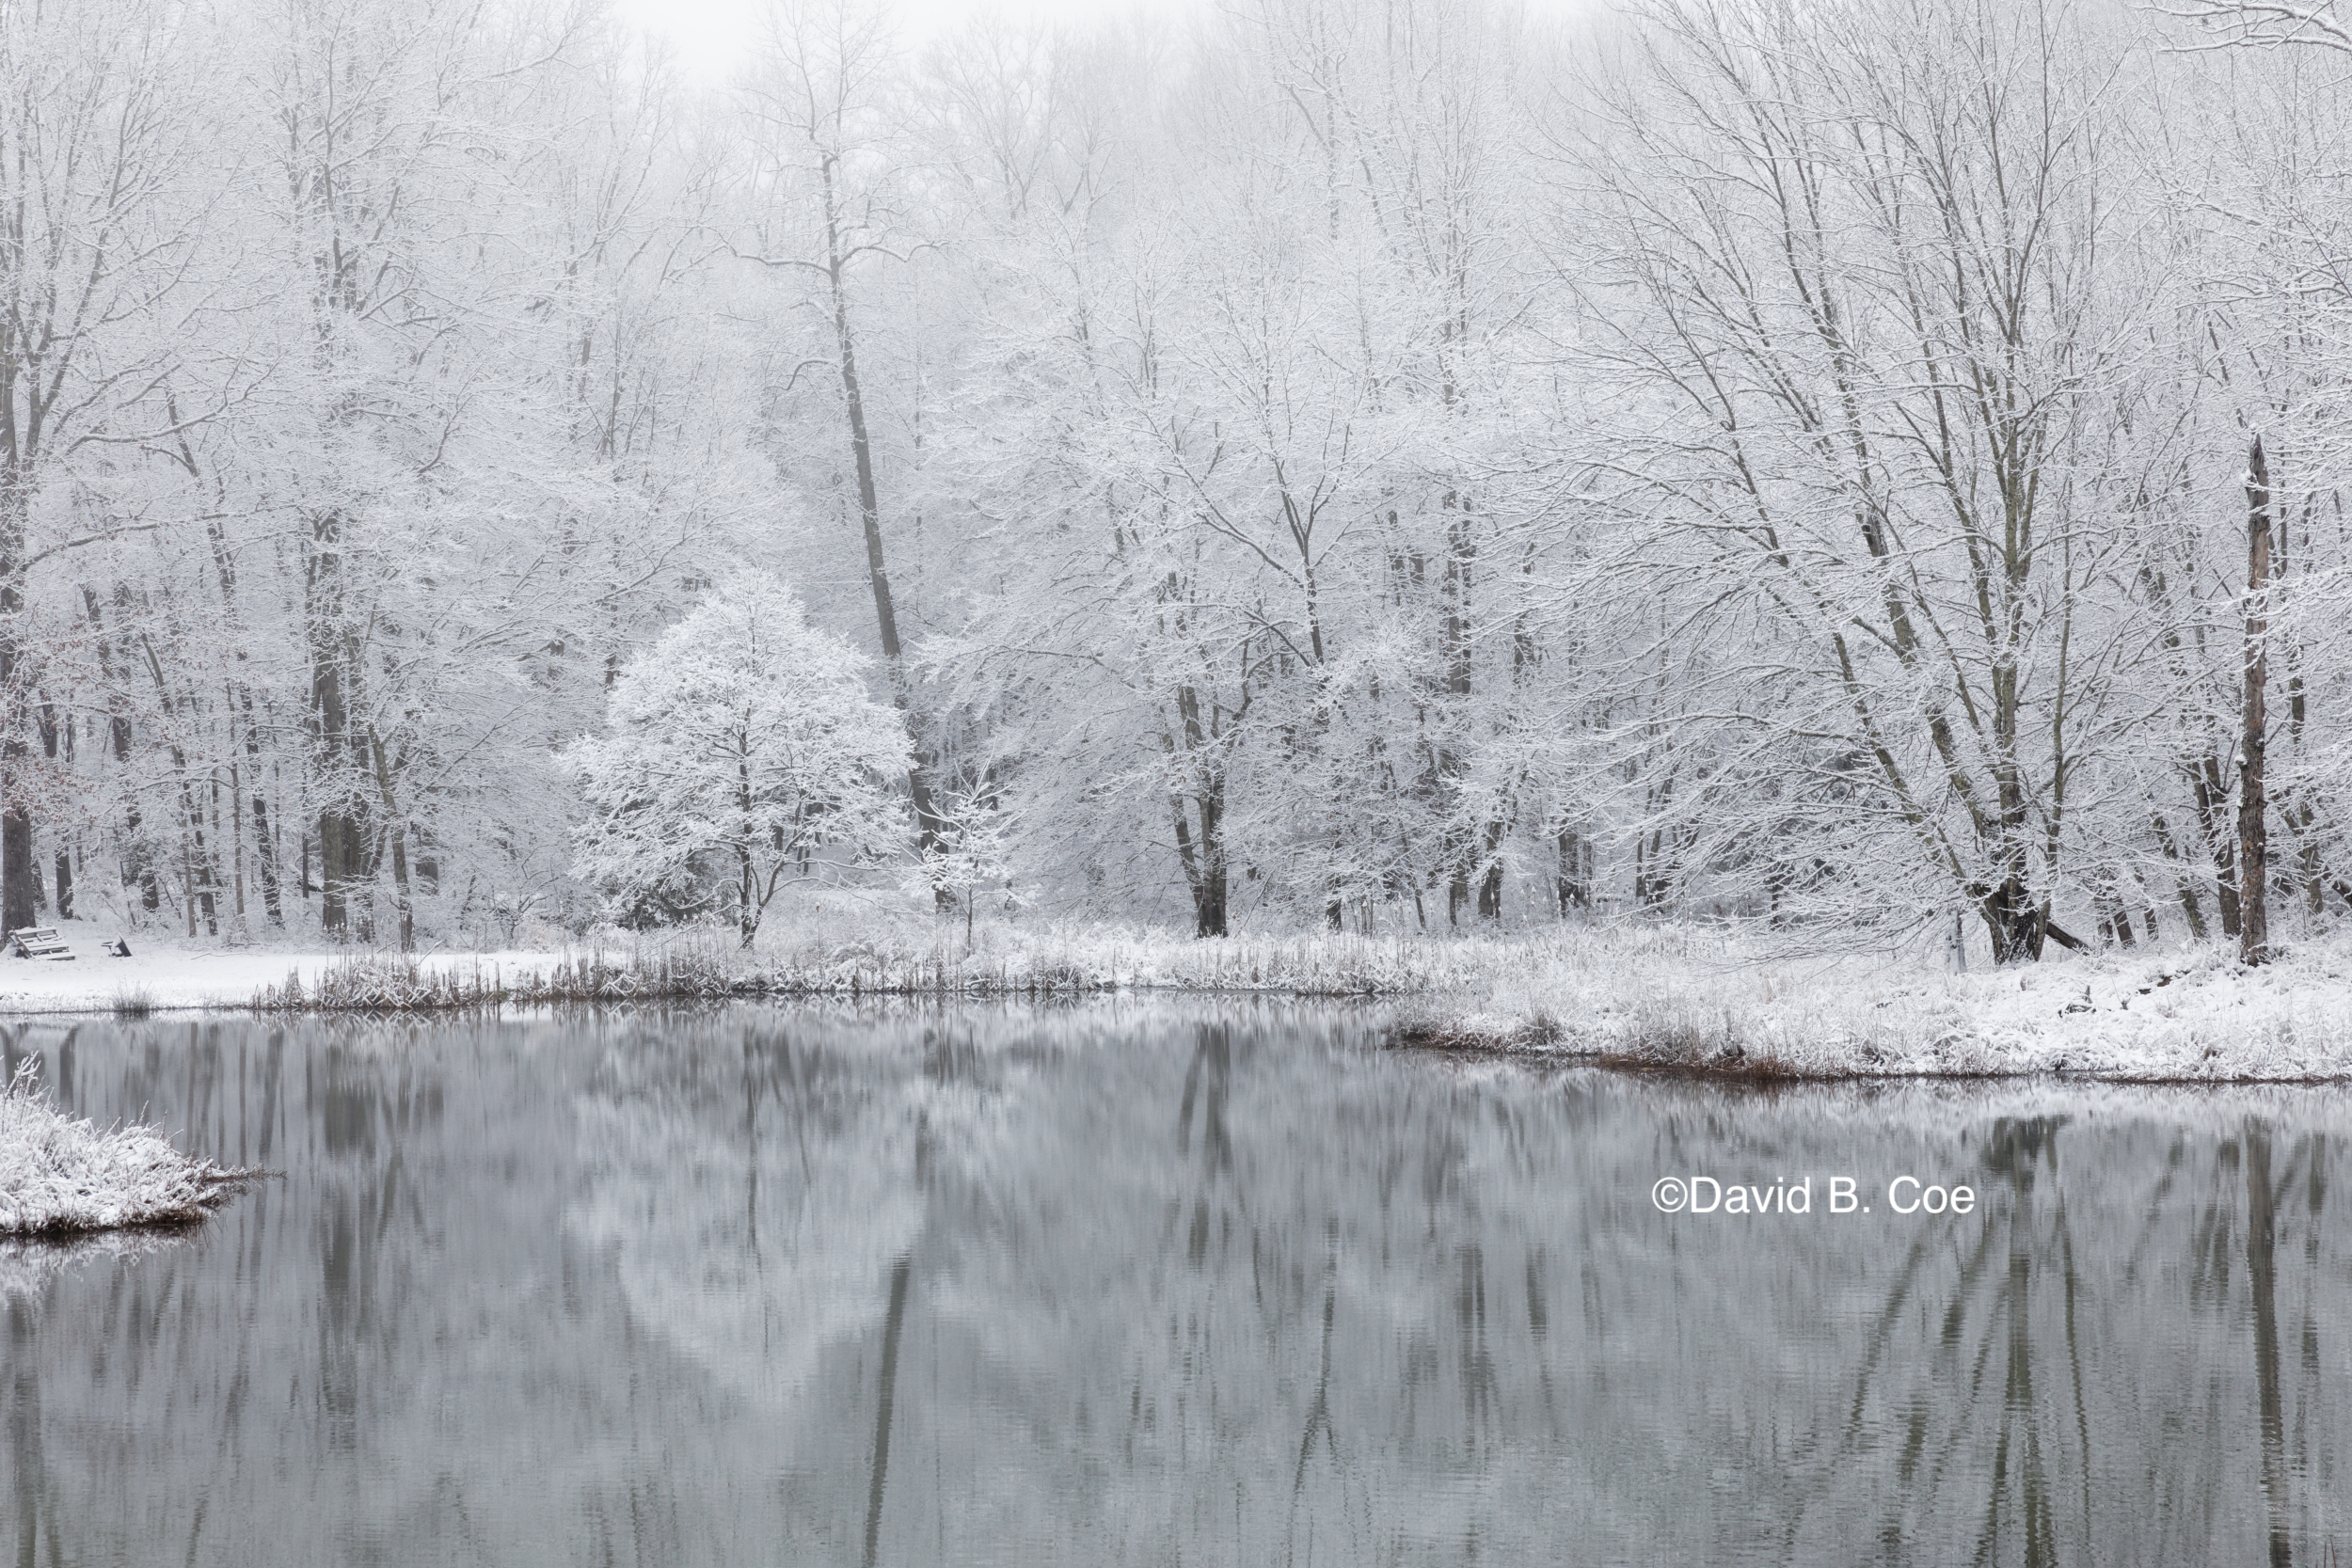 Winter Reflections, by David B. Coe